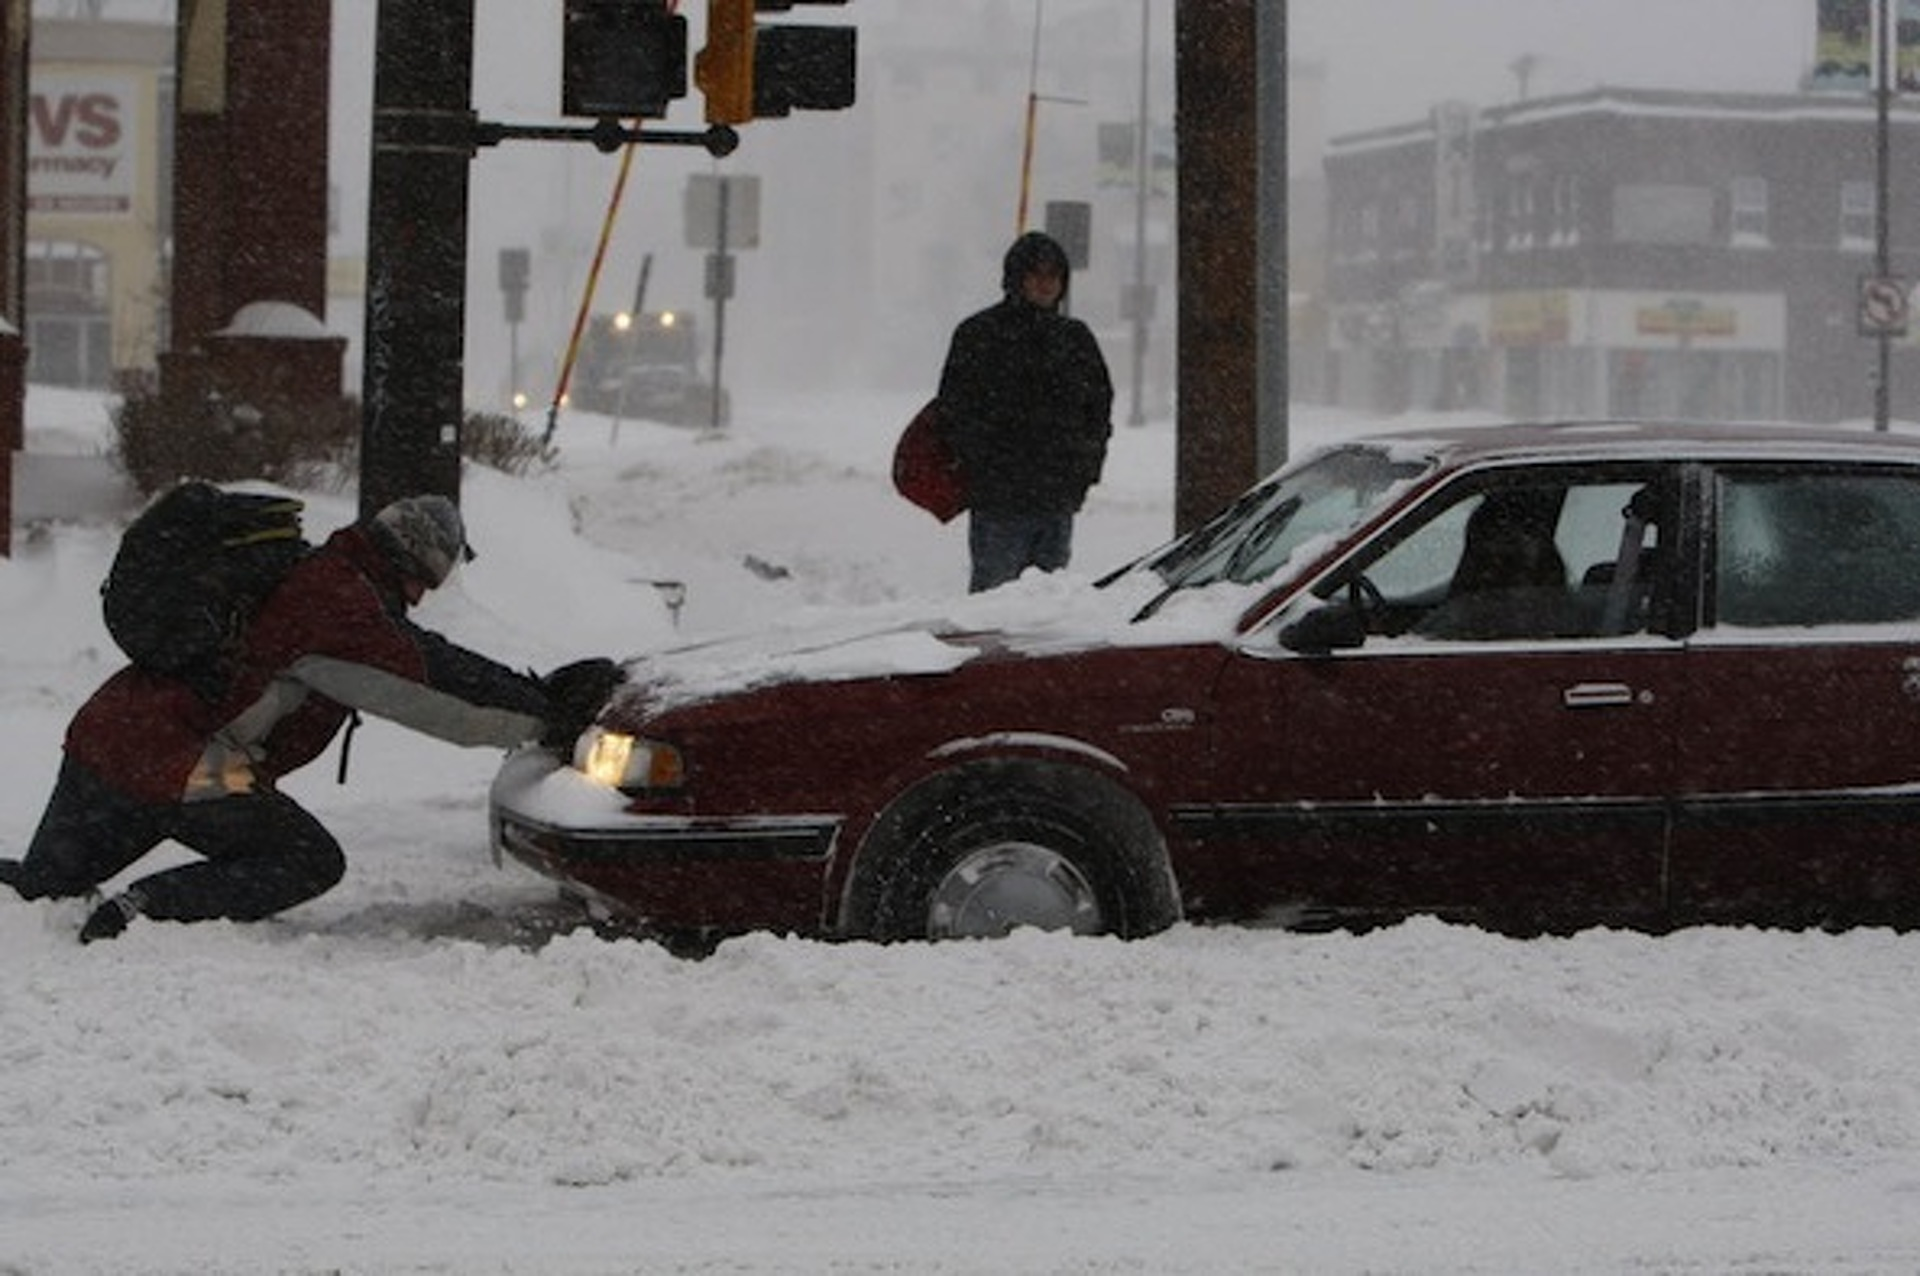 Minnesota, South Dakota Pounded by Heavy Snowfall; Over 600 Crashes Reported